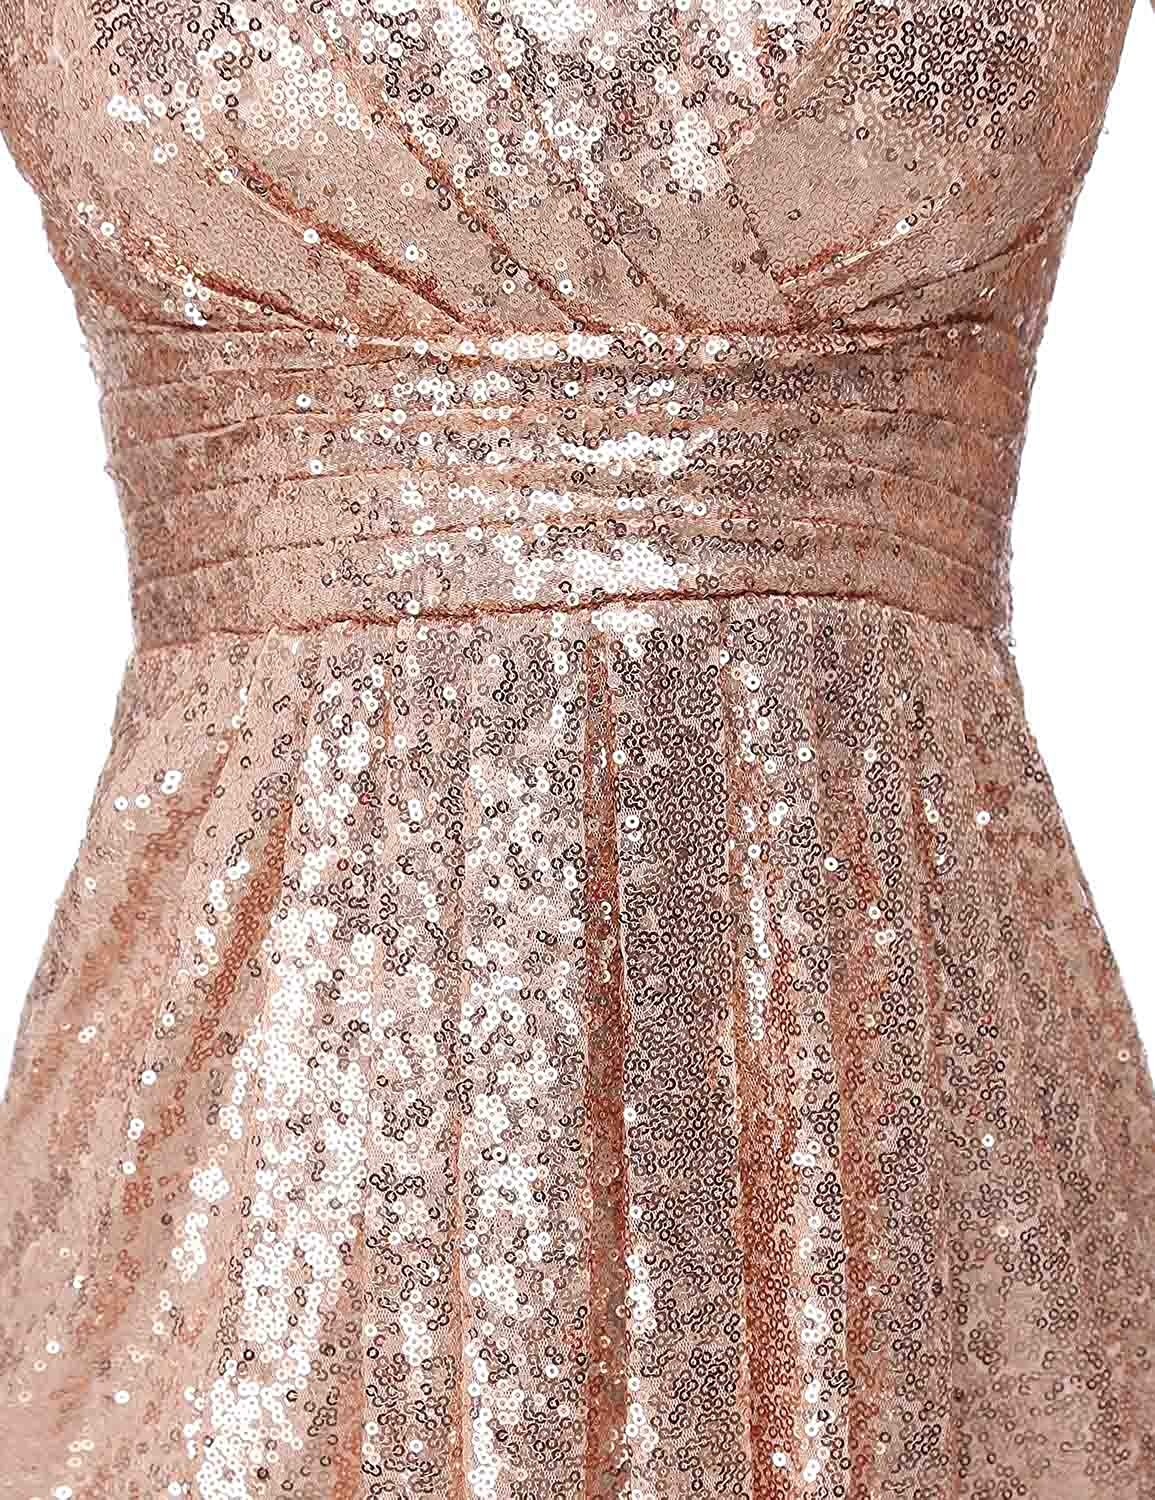 Clearbridal Women's Sequins Mermaid Prom Evening Party Dress Maxi Bridesmaid Gowns SD197 Zz-rose Gold-385